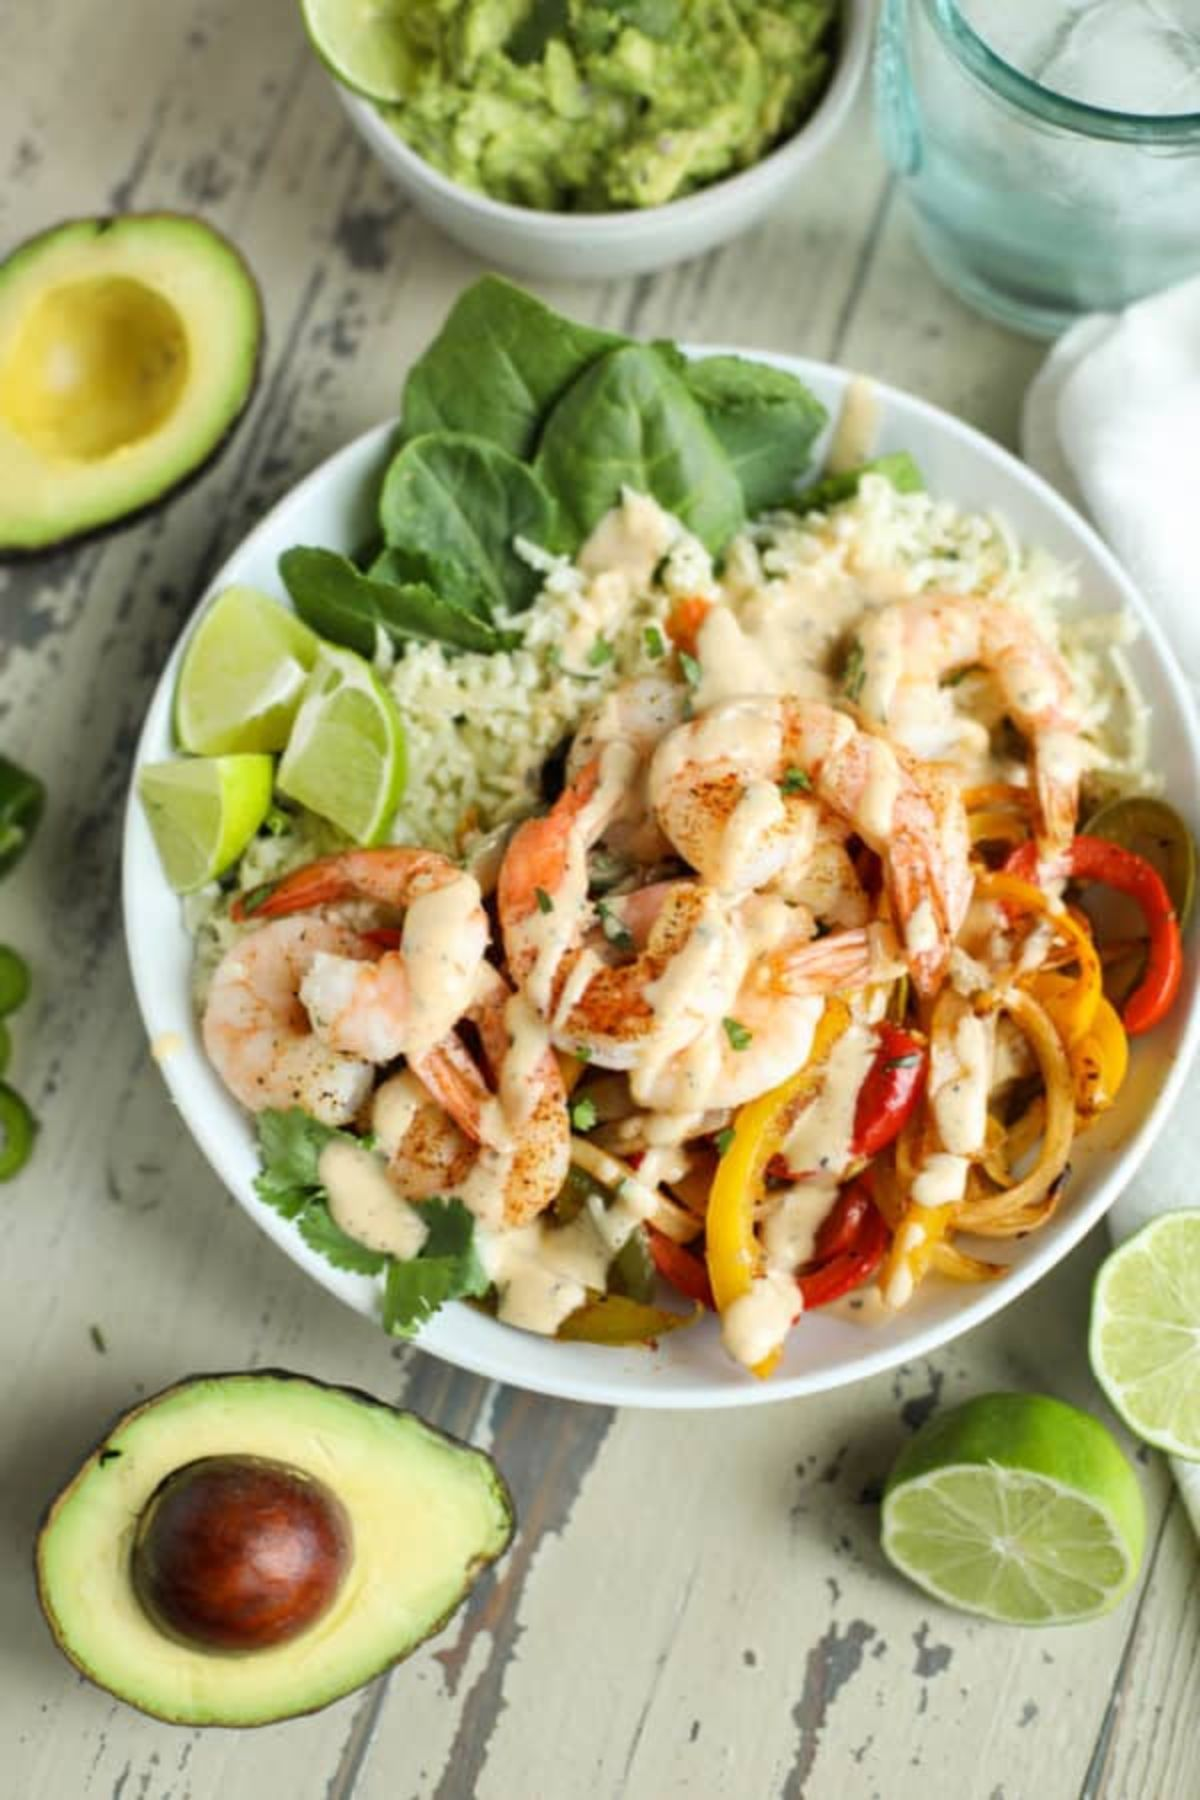 a bowl of rie with shrimp and sliced peppers on top, drizzled with reamy sauce and garnished with lime wedges. Halved avocados, lime wedges and a bowl of guacamole on the side